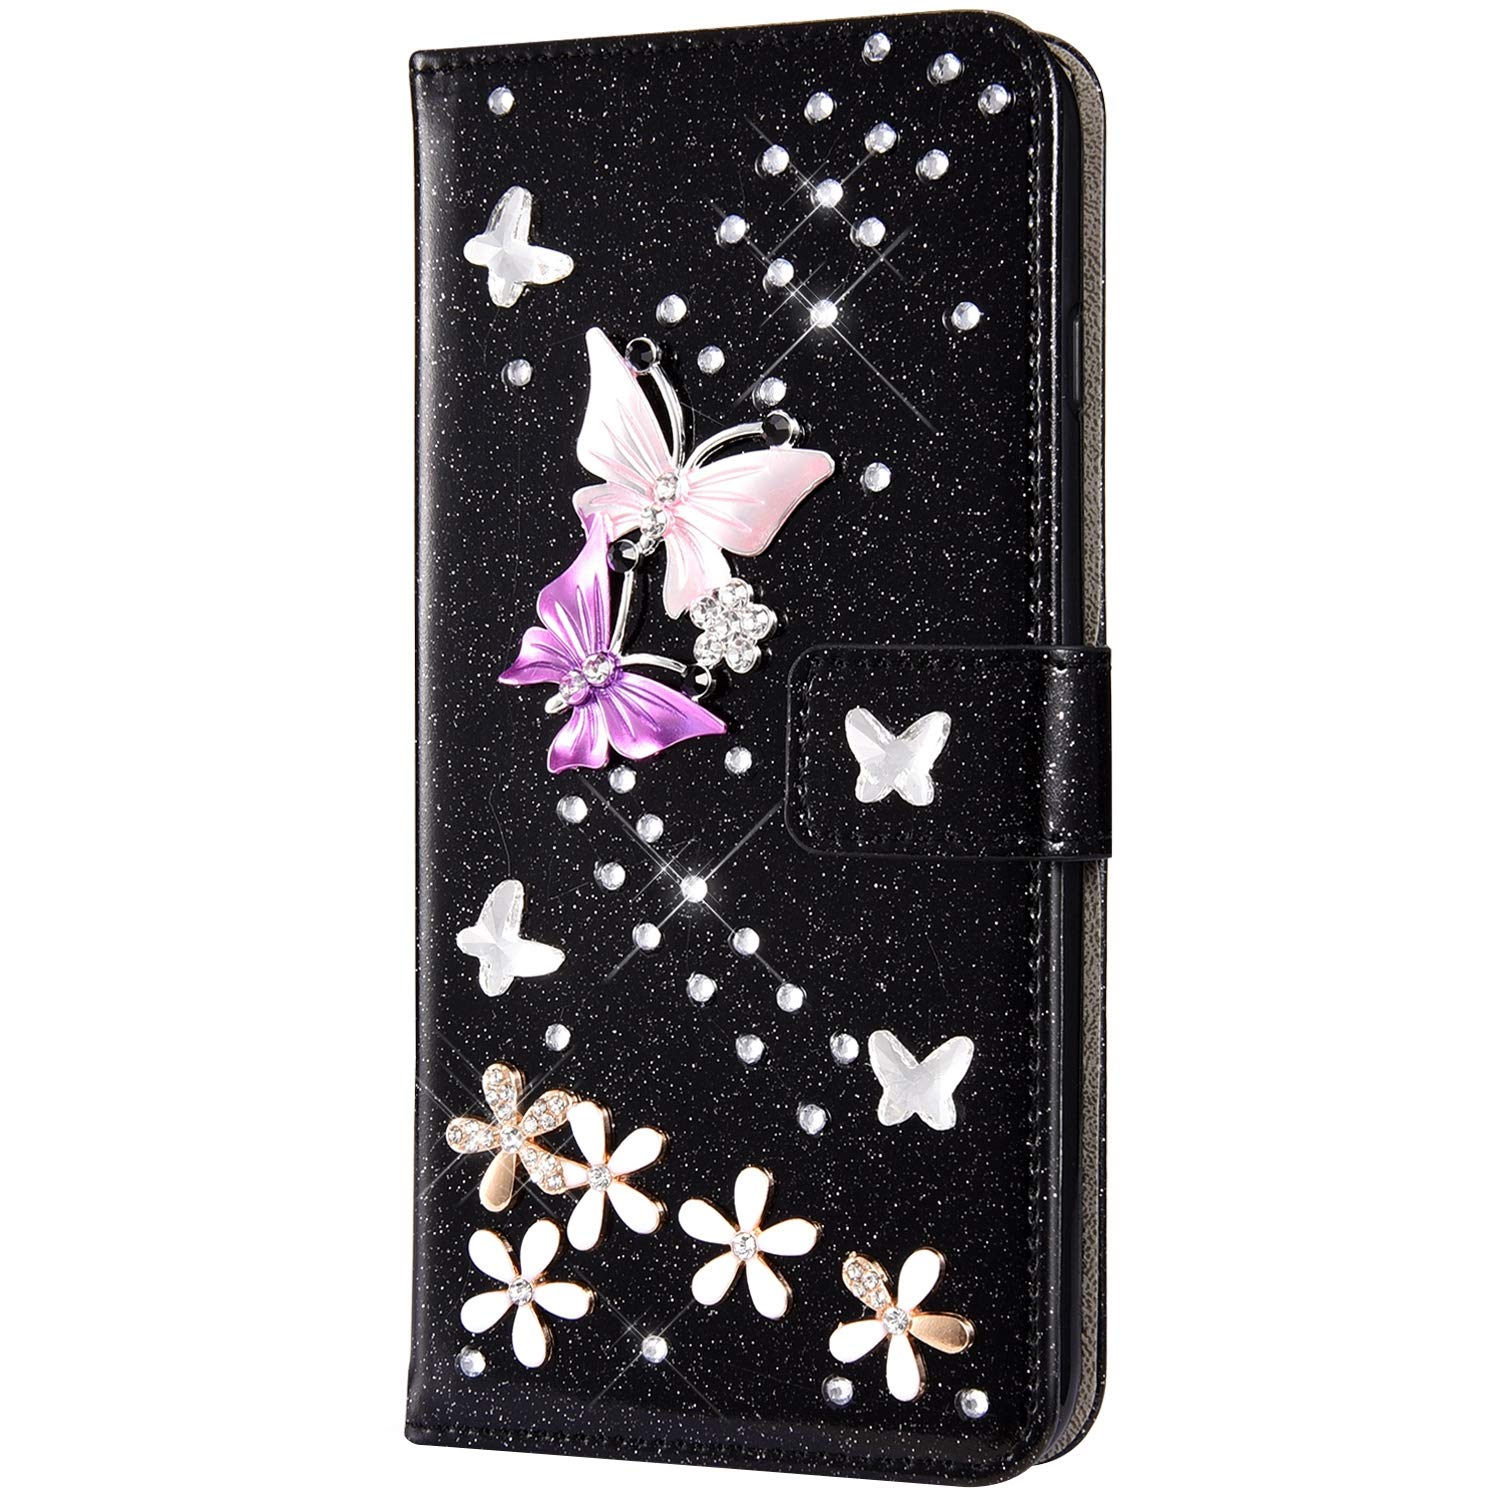 Case for Huawei Y6 2019 Flip Case Premium PU Leather Wallet Case 3D Handmade Glitter Bling Shiny Diamond Butterfly with Card Slots Kickstand for Huawei Y6 2019,Black by ikasus